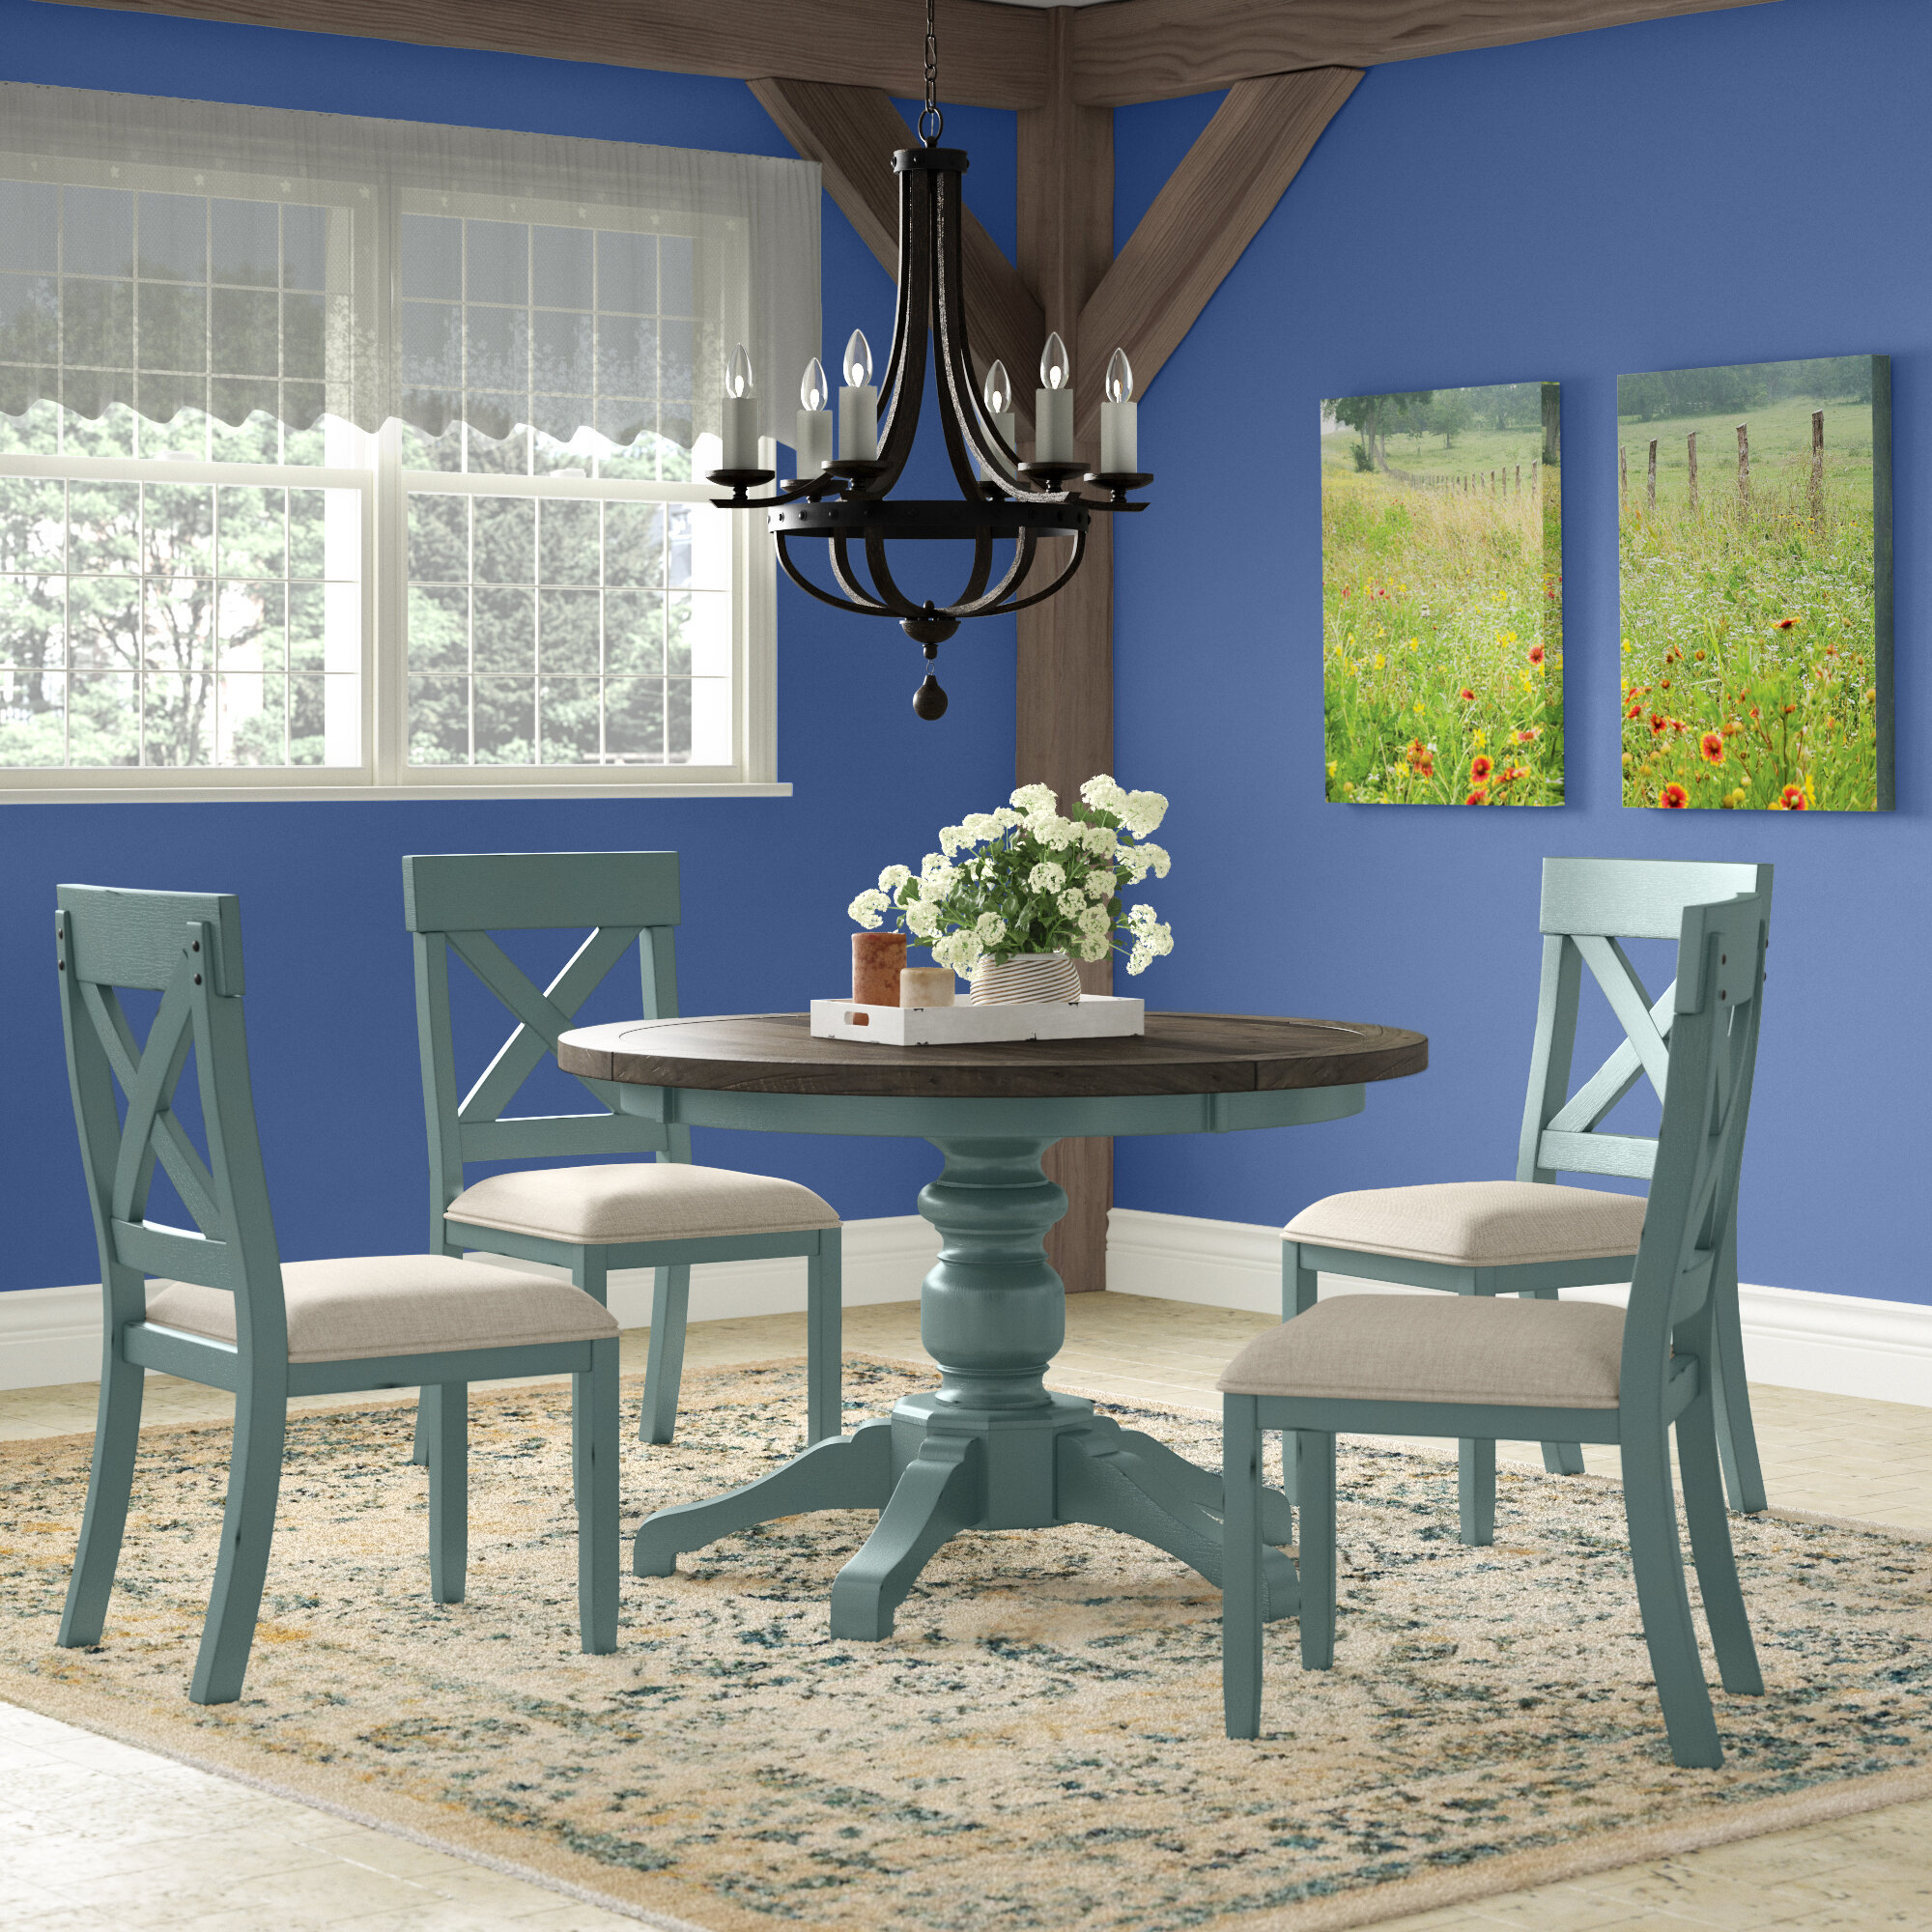 Distressed Finish Kitchen Dining Room Sets You Ll Love In 2021 Wayfair